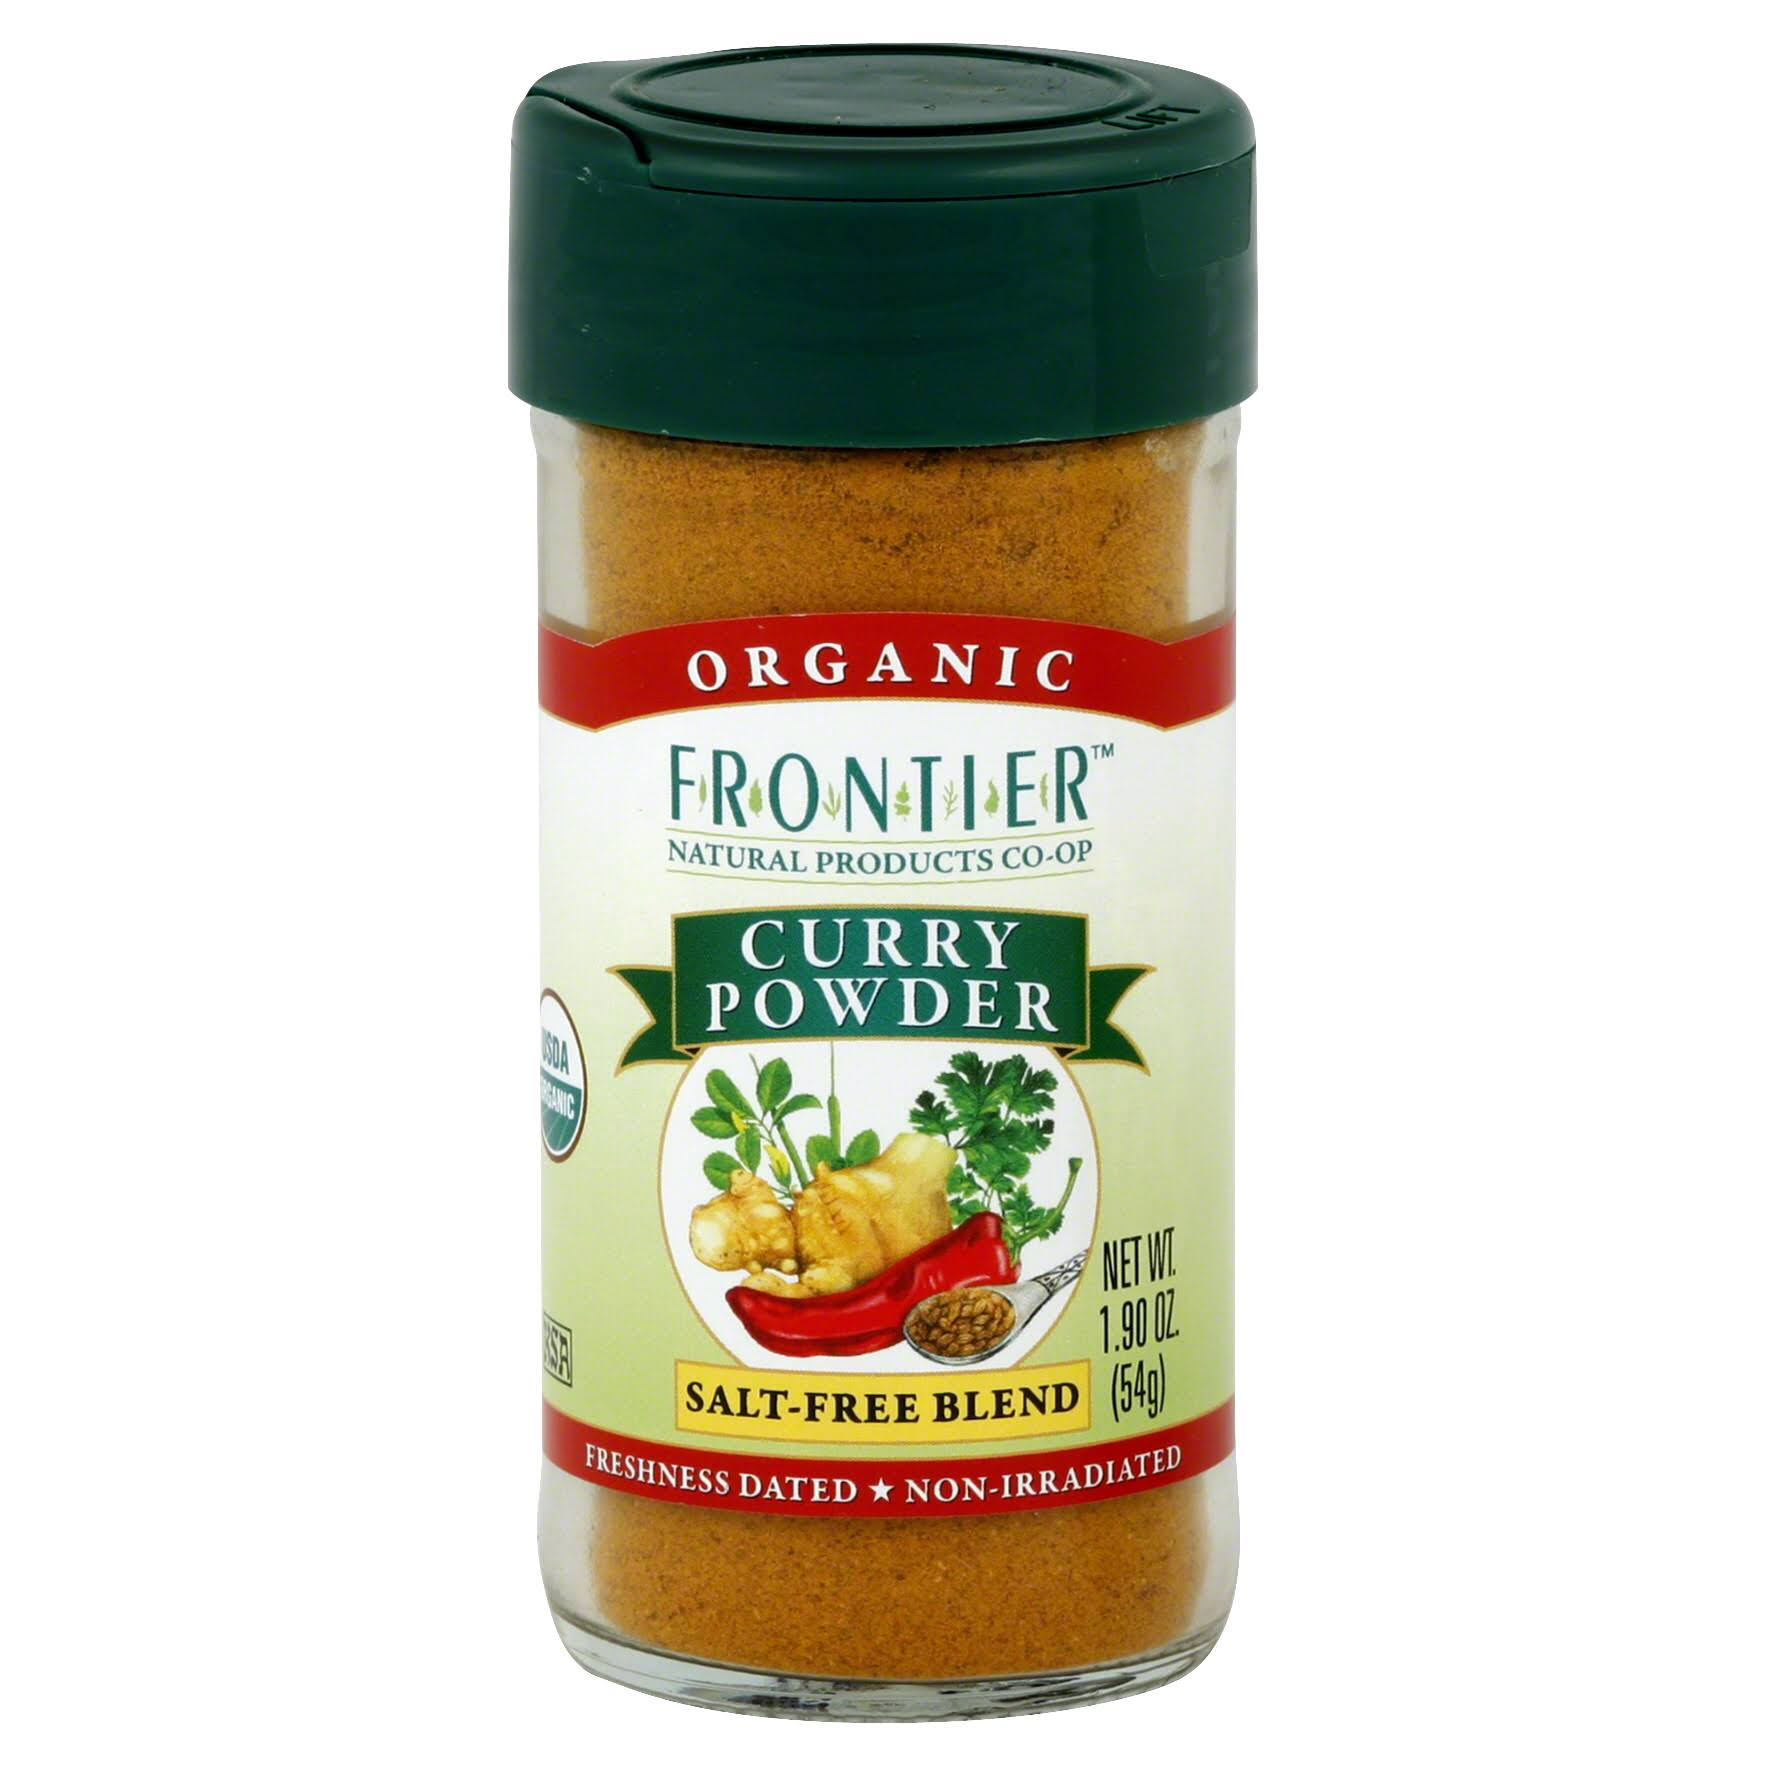 Frontier Organic Curry Powder - 54g